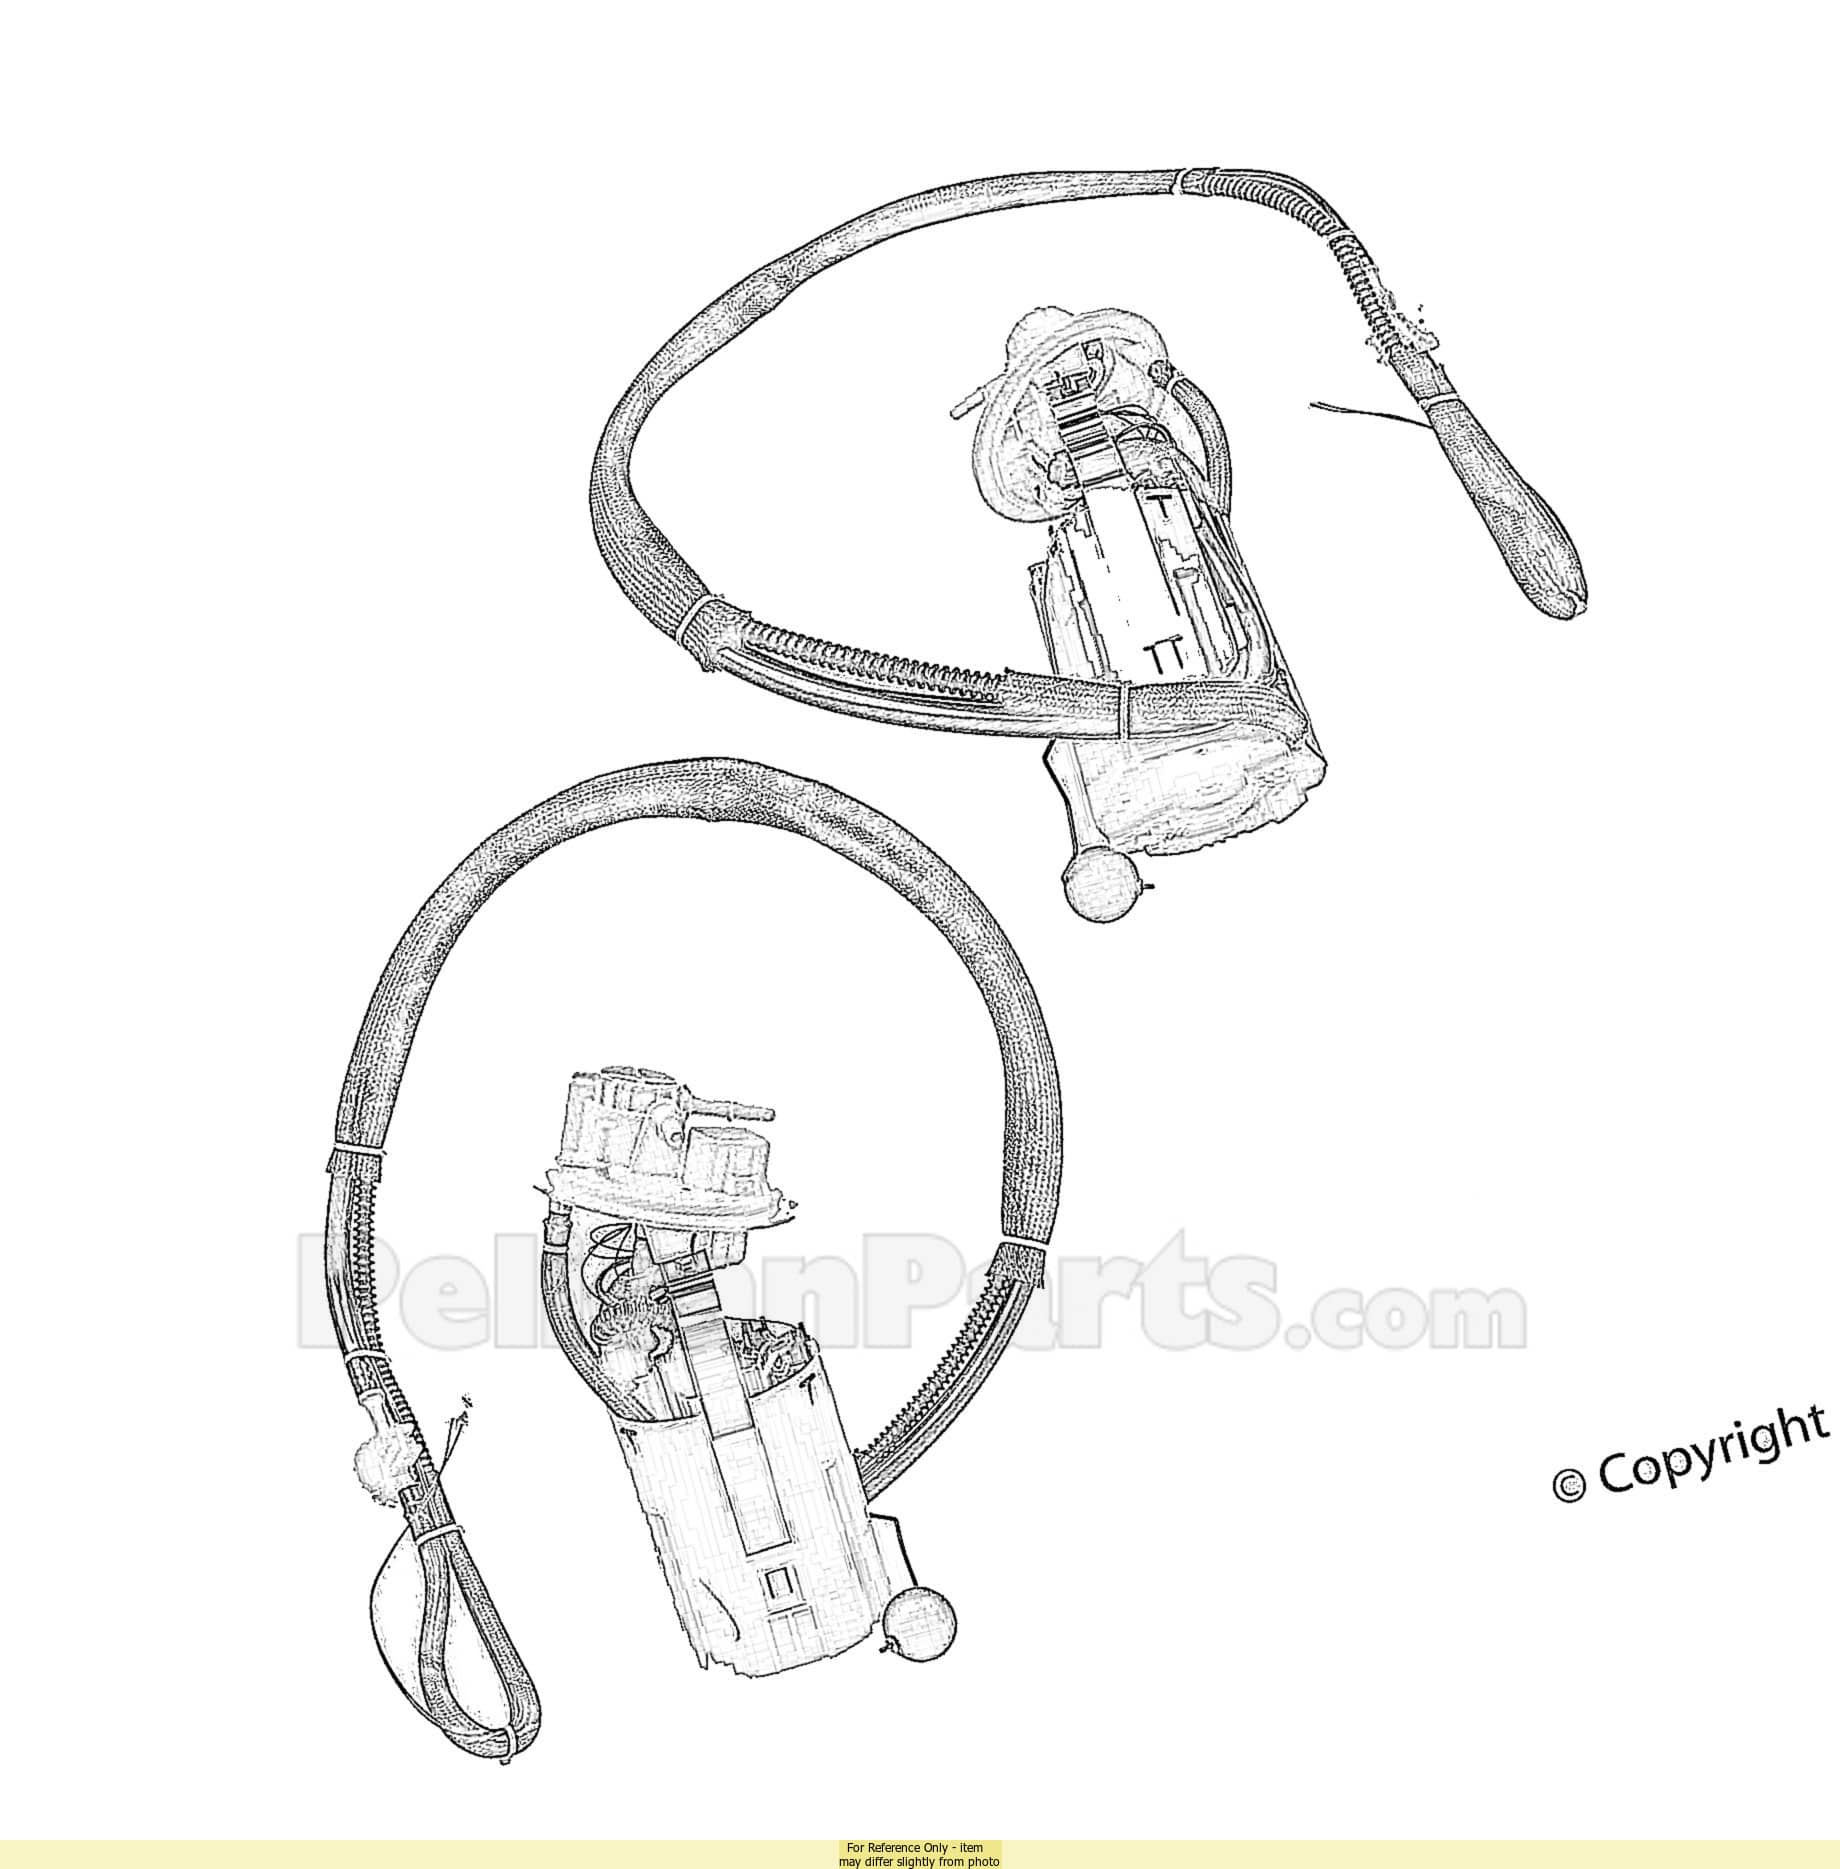 Fuel Pump Assembly With Fuel Level Sending Unit